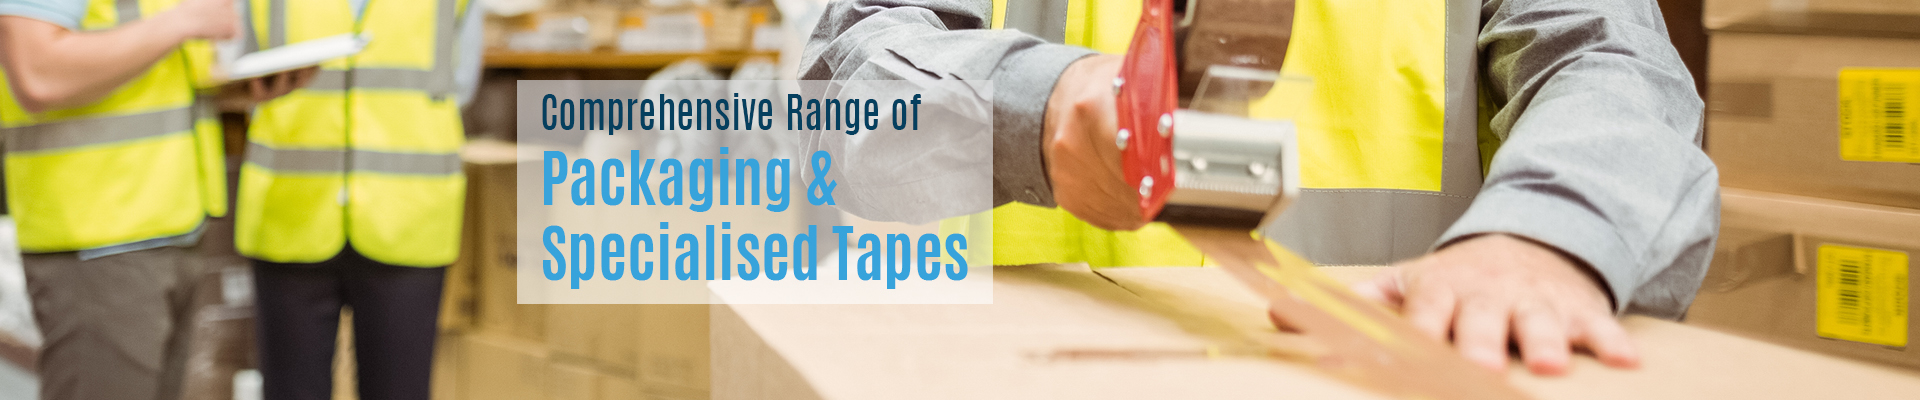 Extensive Range of Packaging & Specialised Tapes